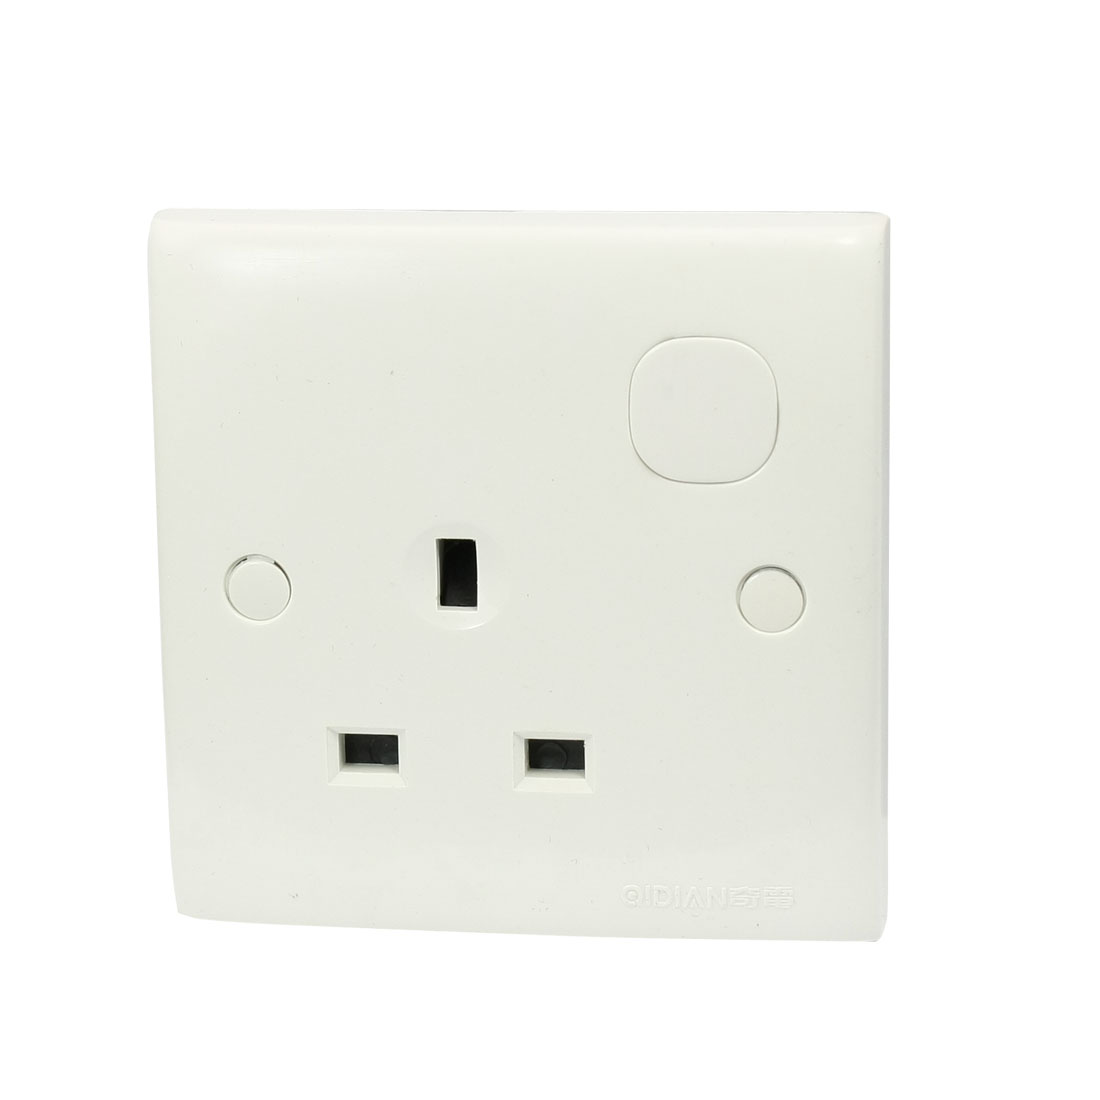 AC 250V 13A 3 Pin UK White Square Wall Outlet Plate Socket